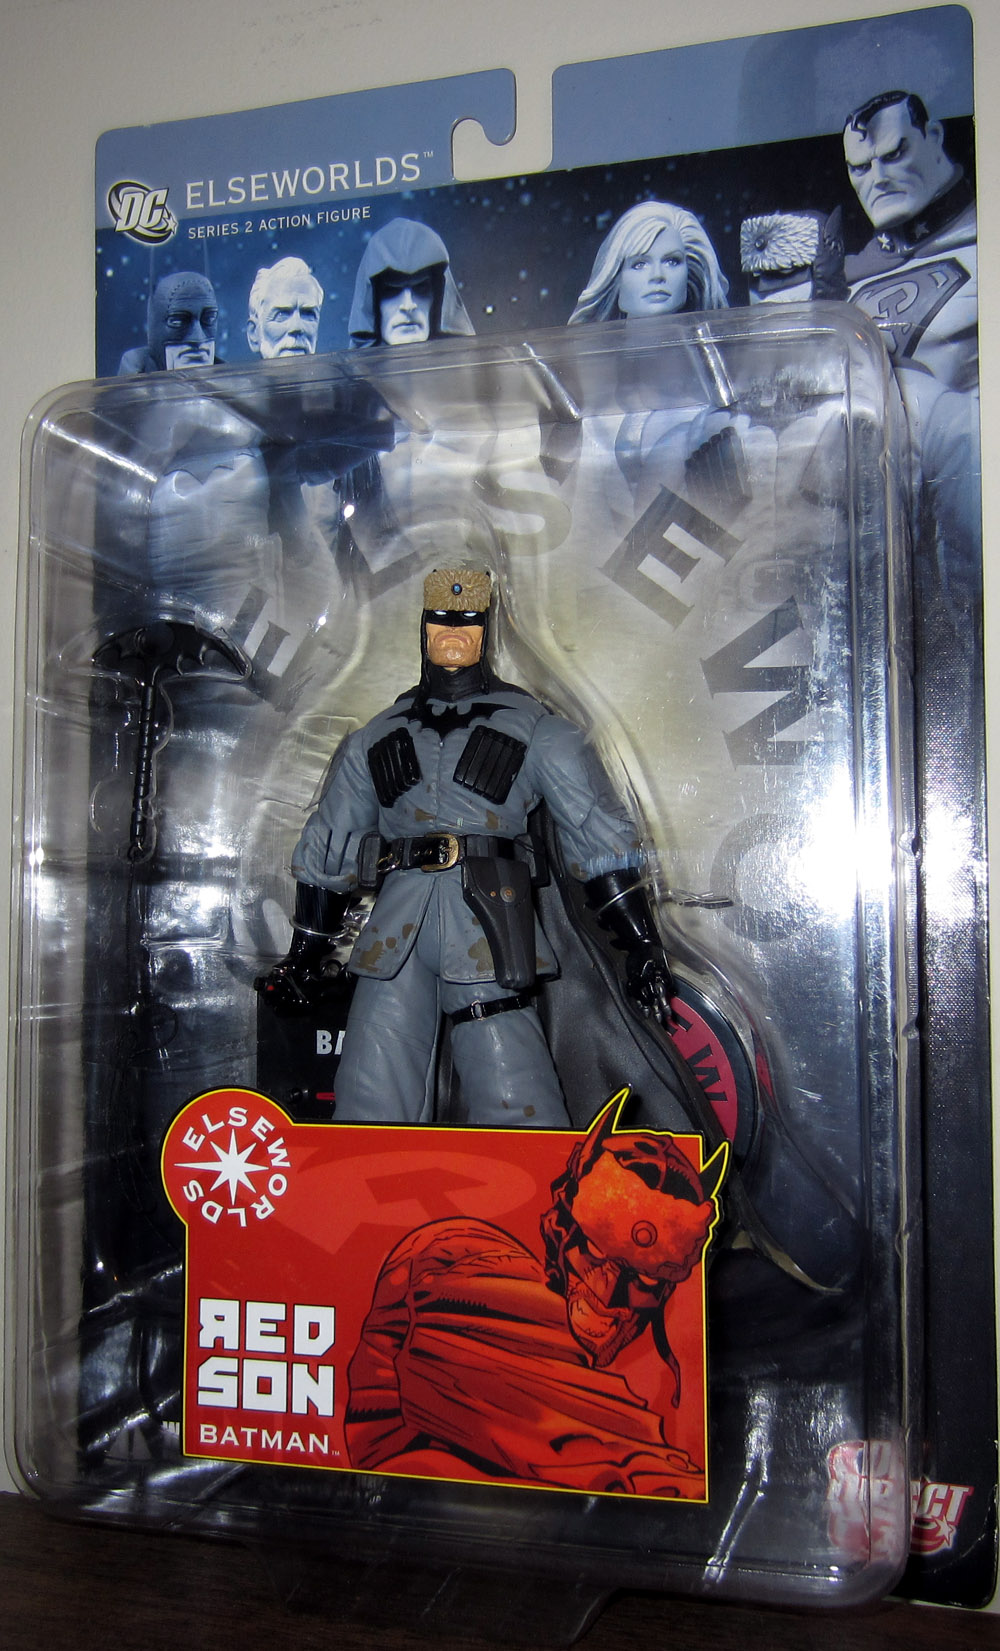 Red Son Batman (series 2)